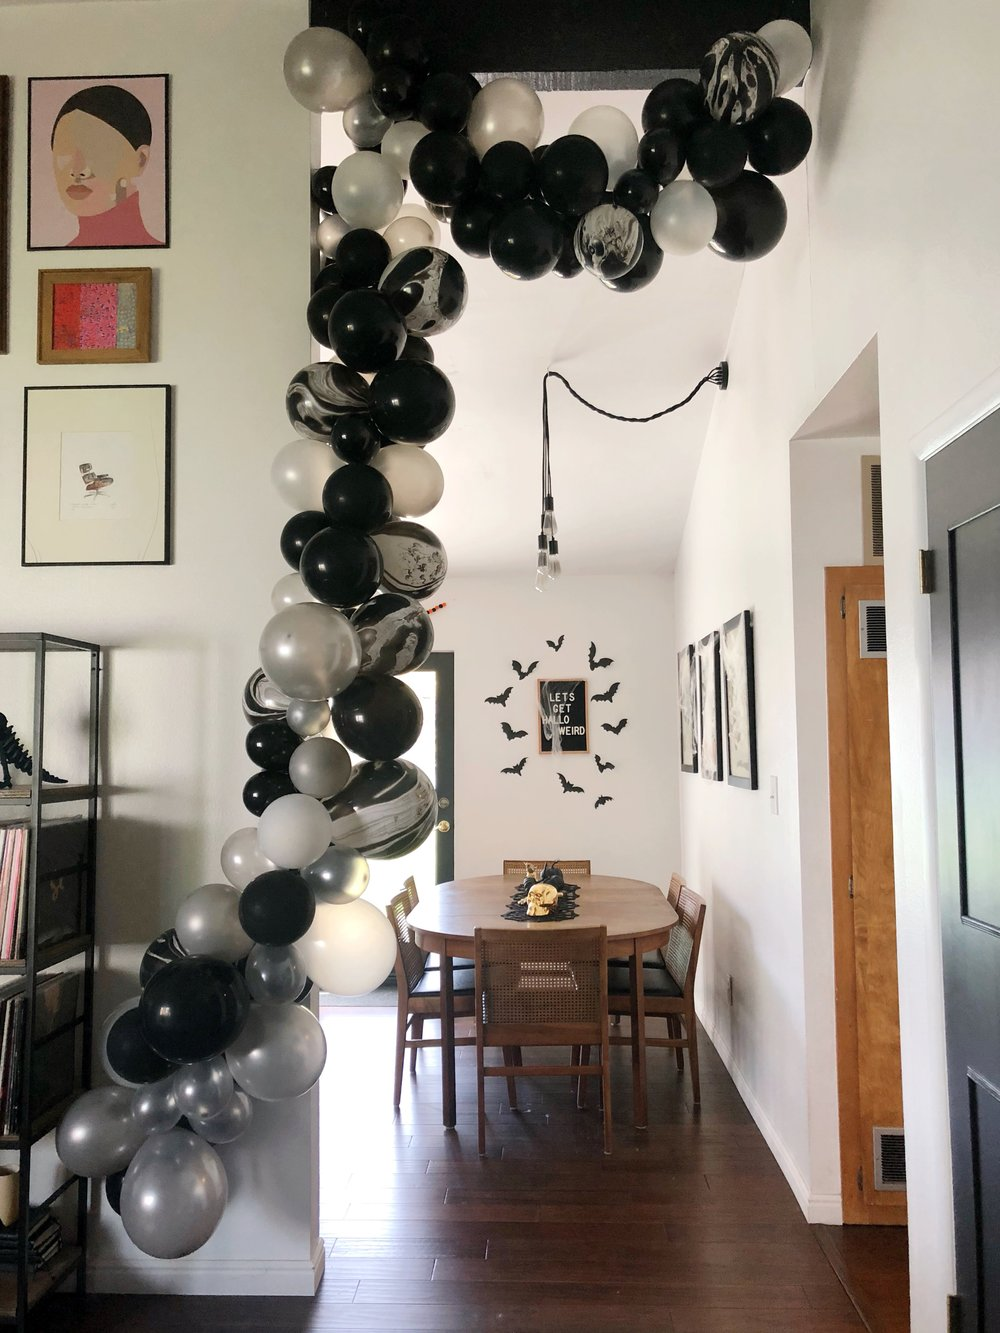 The one that started it all, a big thank you to this spook-tacular balloon arch for making me completely obsessed!